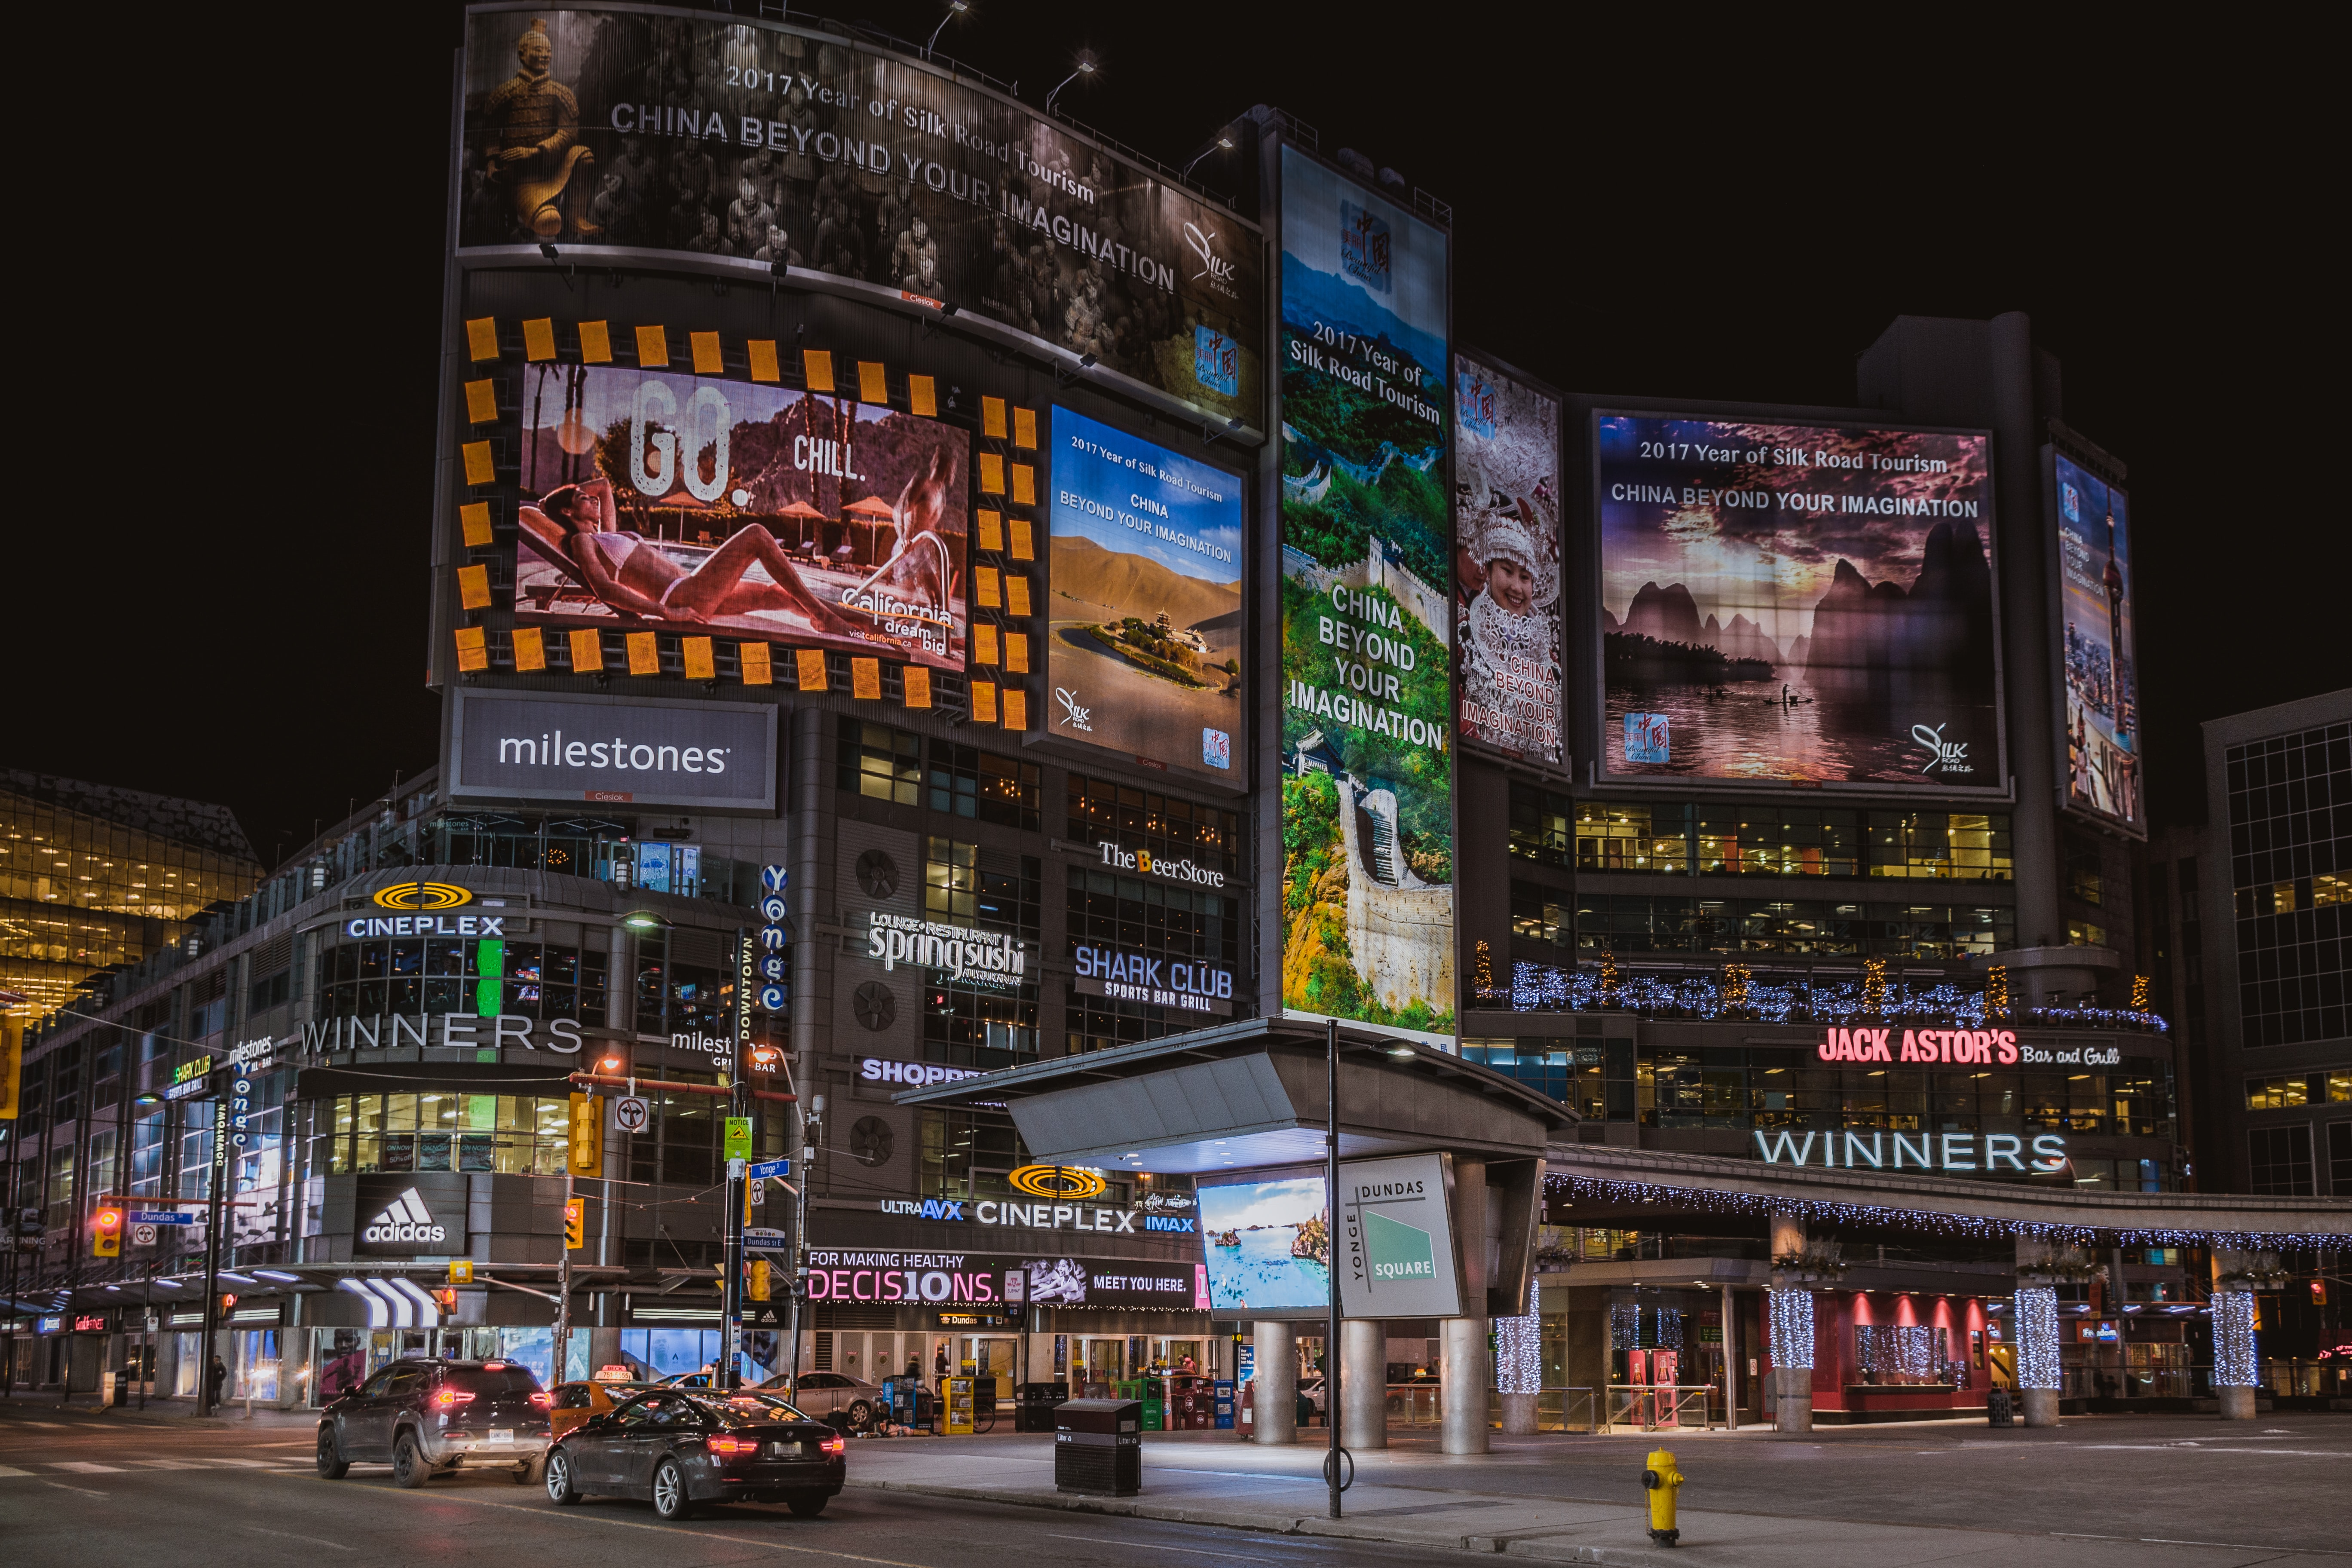 Neons and advertisements in a square in Toronto at night